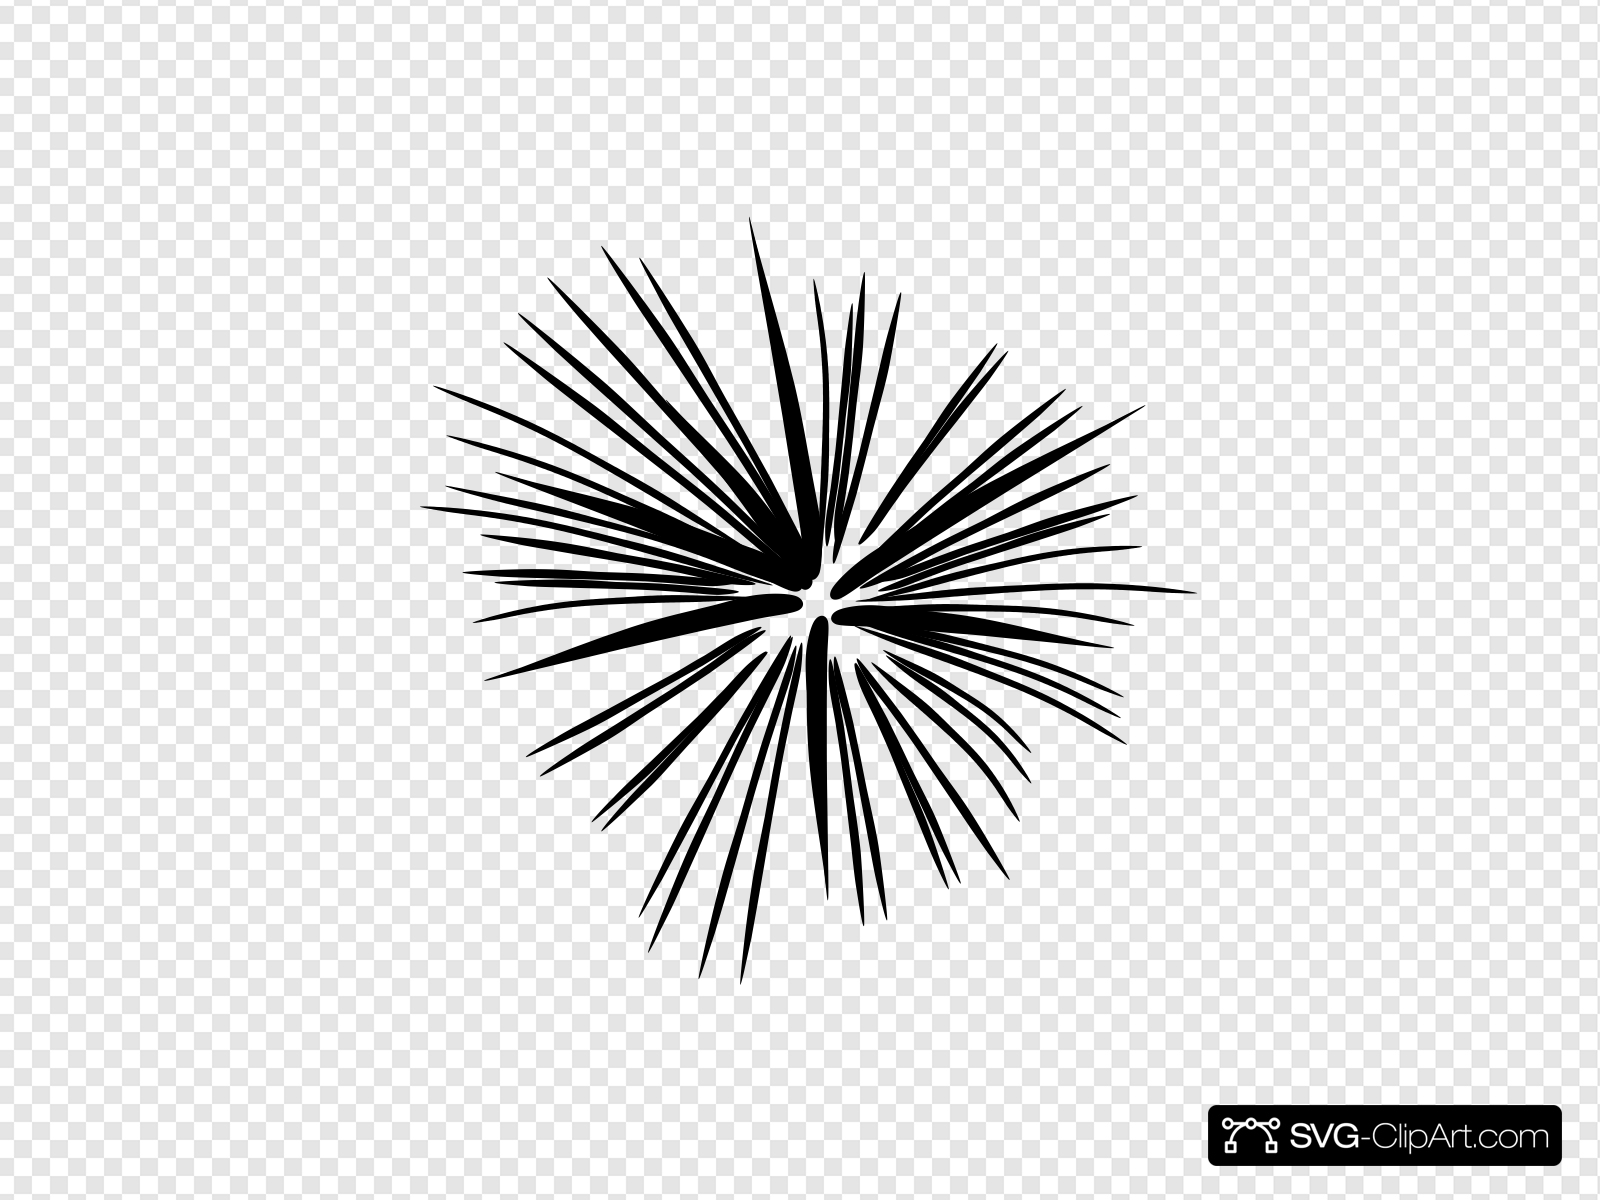 Fireworks black and white clipart royalty free download Black And White Fireworks Clip art, Icon and SVG - SVG Clipart royalty free download